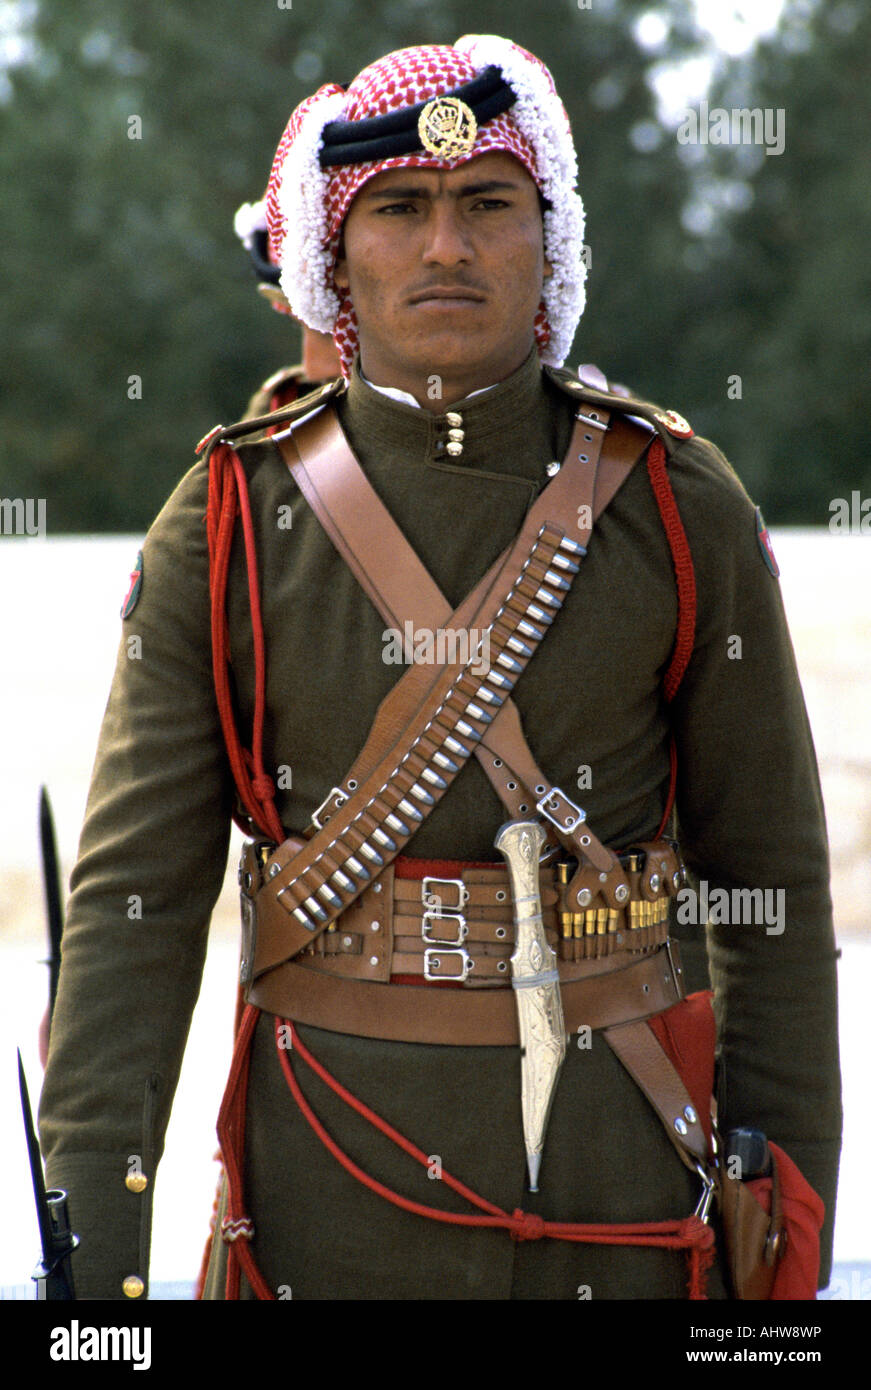 Soldier In Traditional Bedouin Headress And Uniform Of The